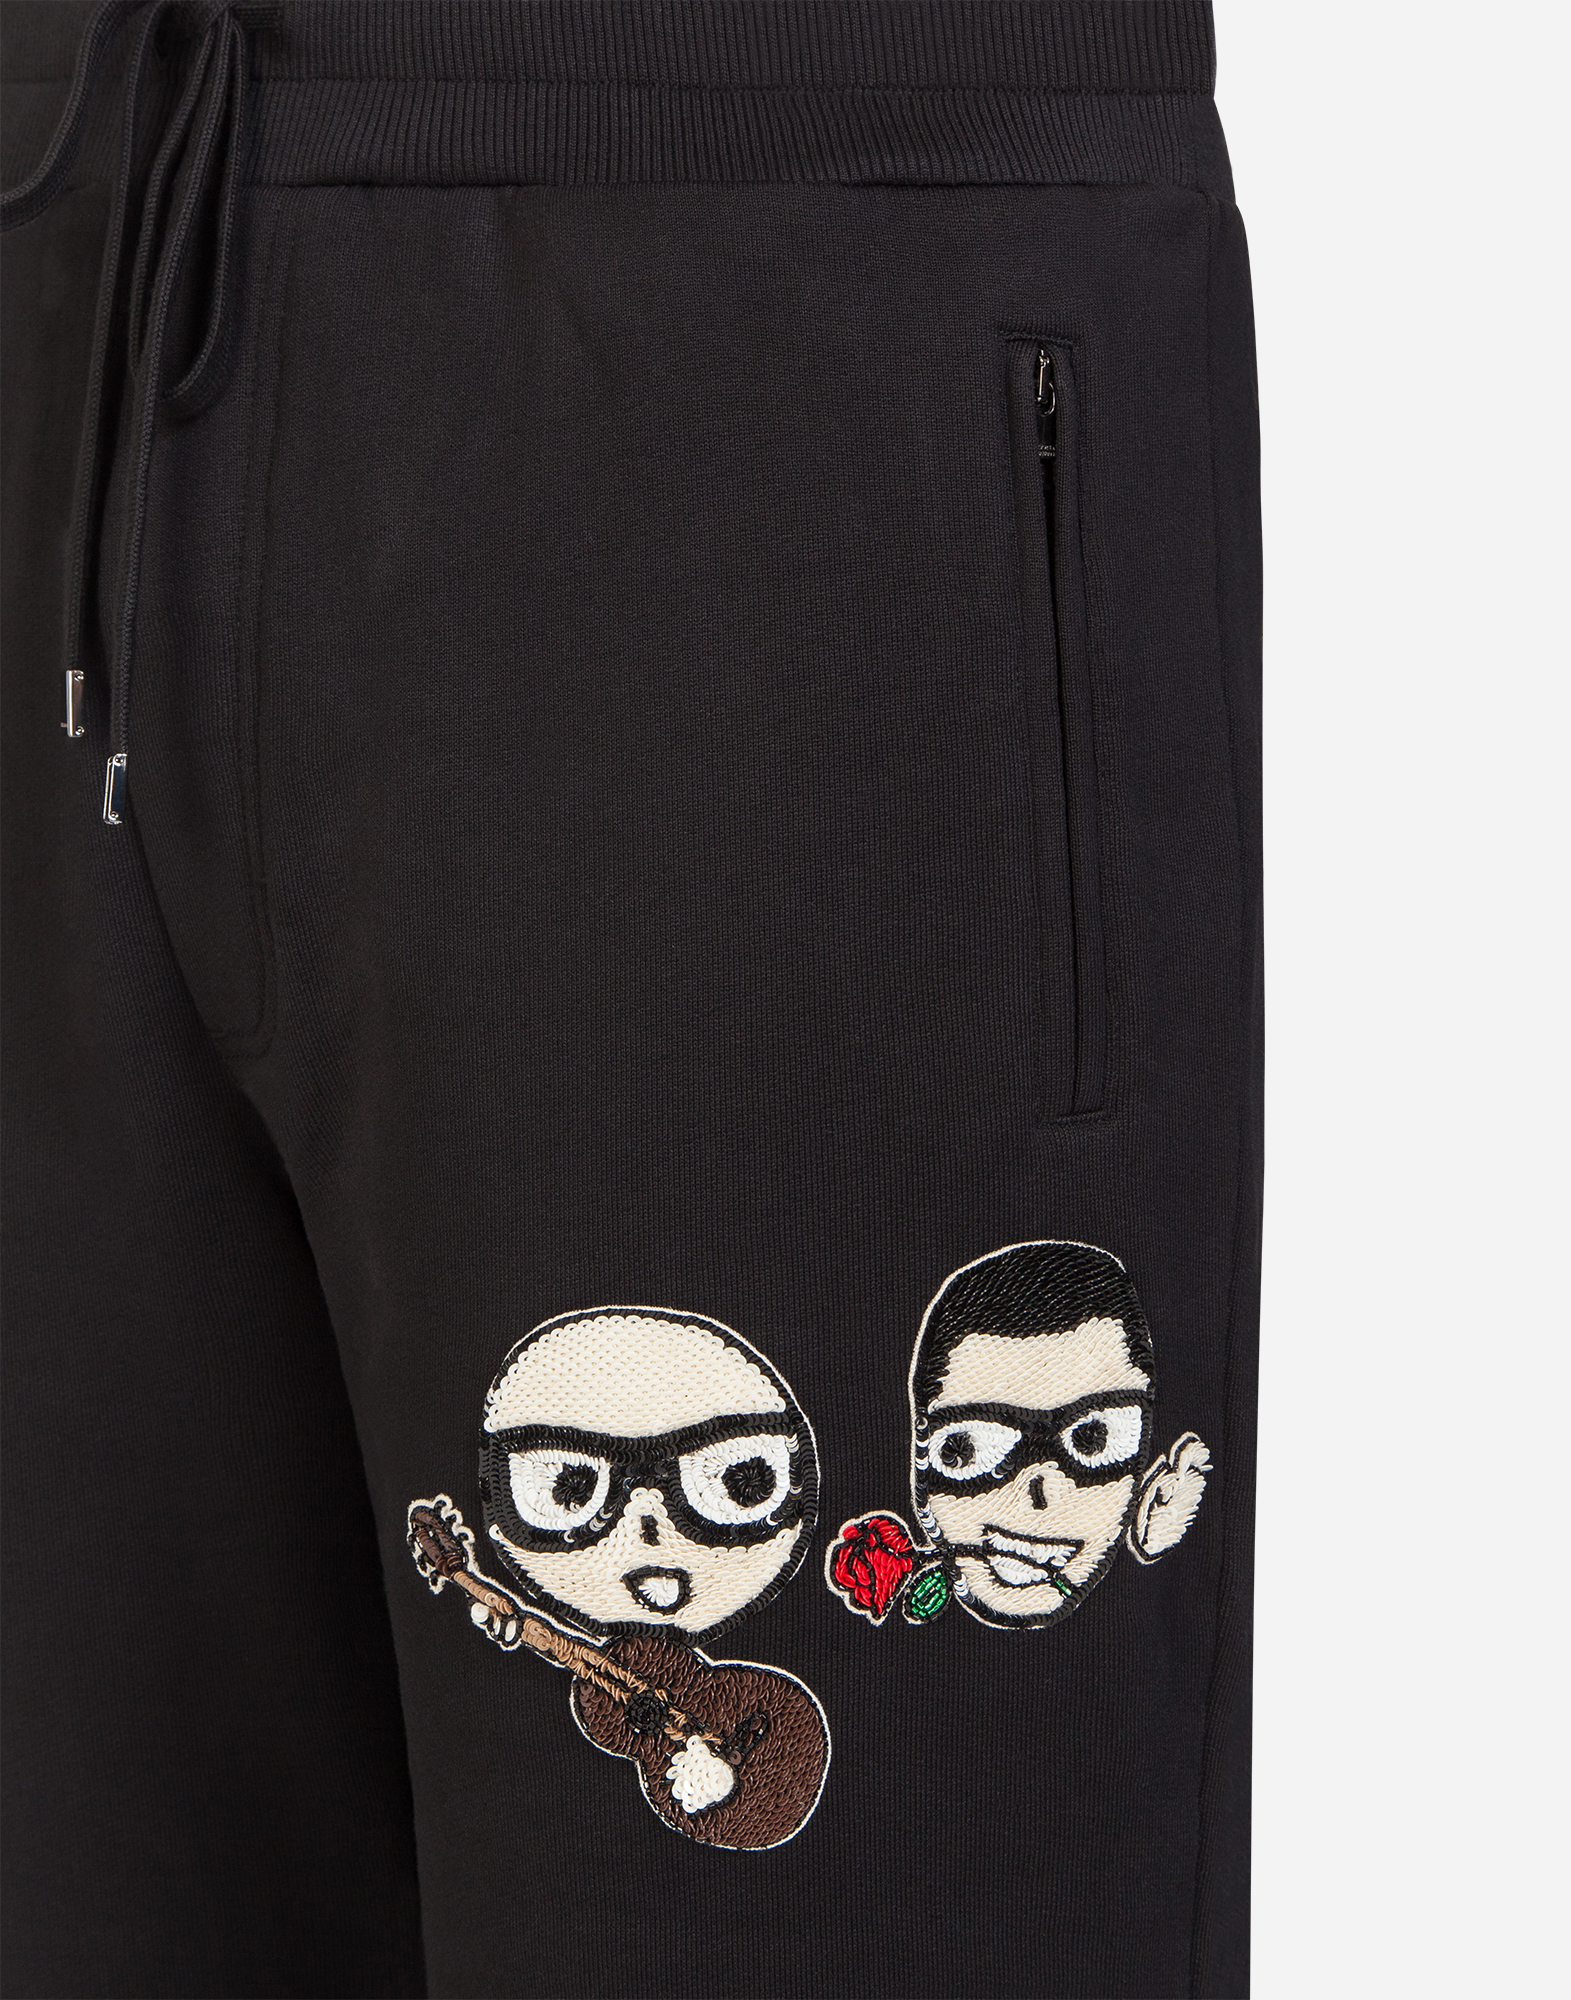 Dolce & Gabbana COTTON JOGGING PANTS WITH DESIGNERS' PATCHES